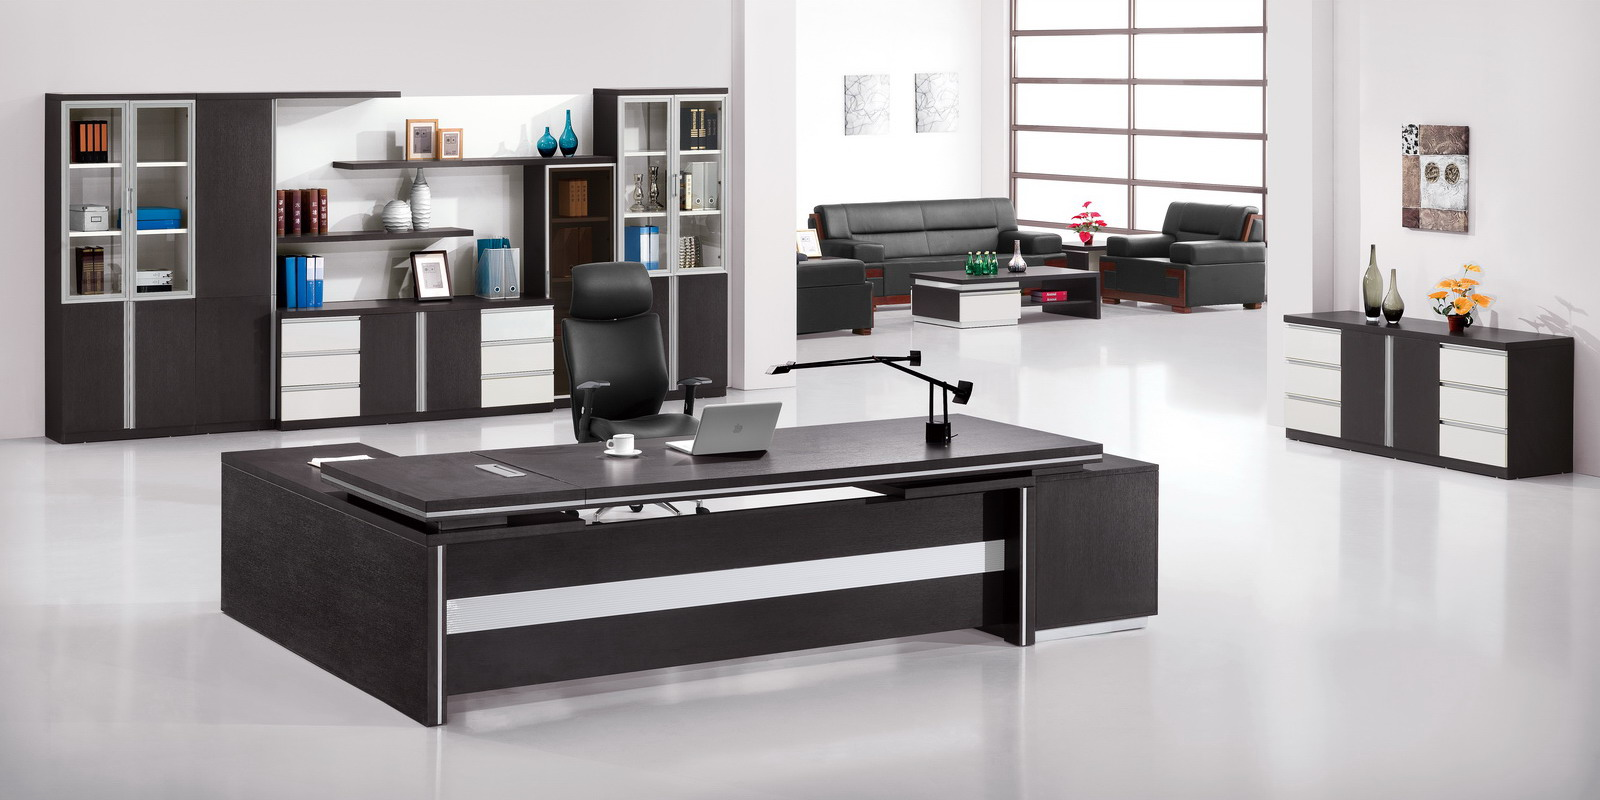 Amazing Office Furniture 1600 x 800 · 220 kB · jpeg